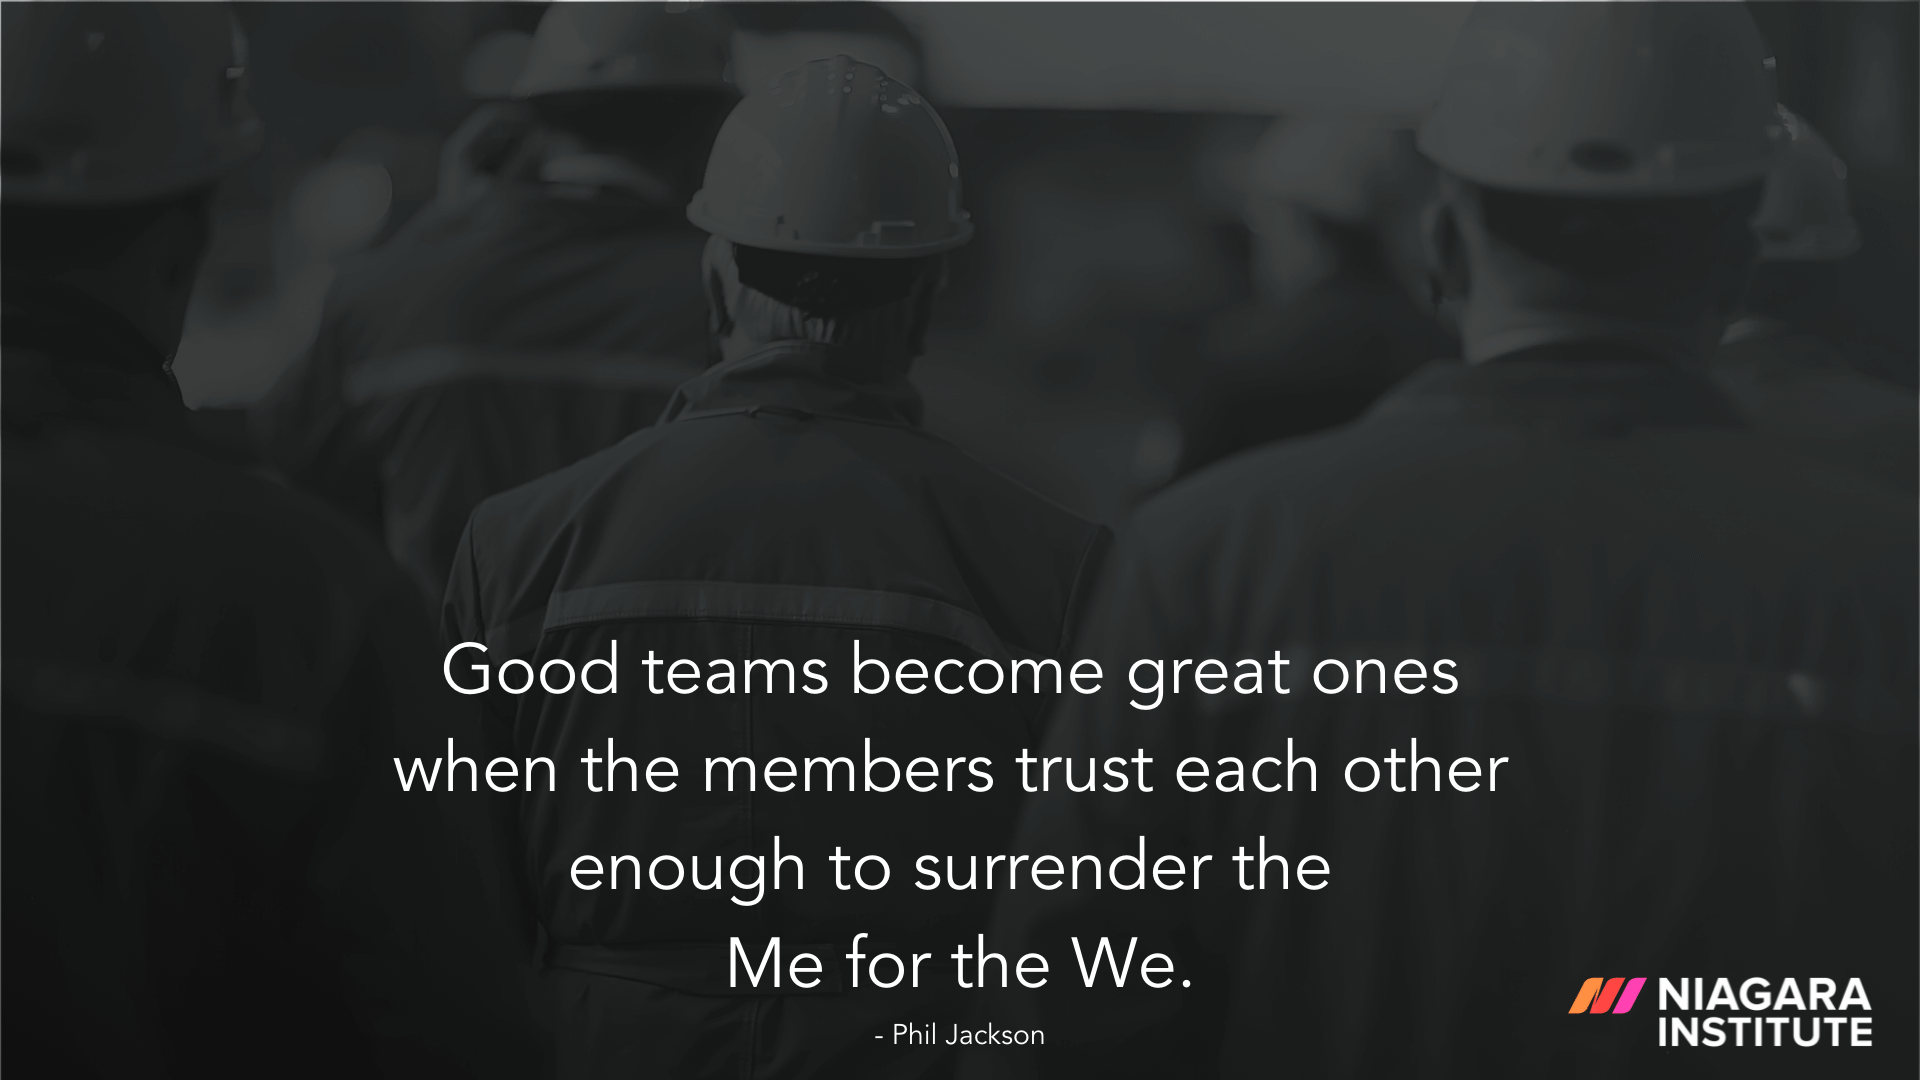 Good teams become great ones when the members trust each other enough to surrender the Me for the We. - Phil Jackson